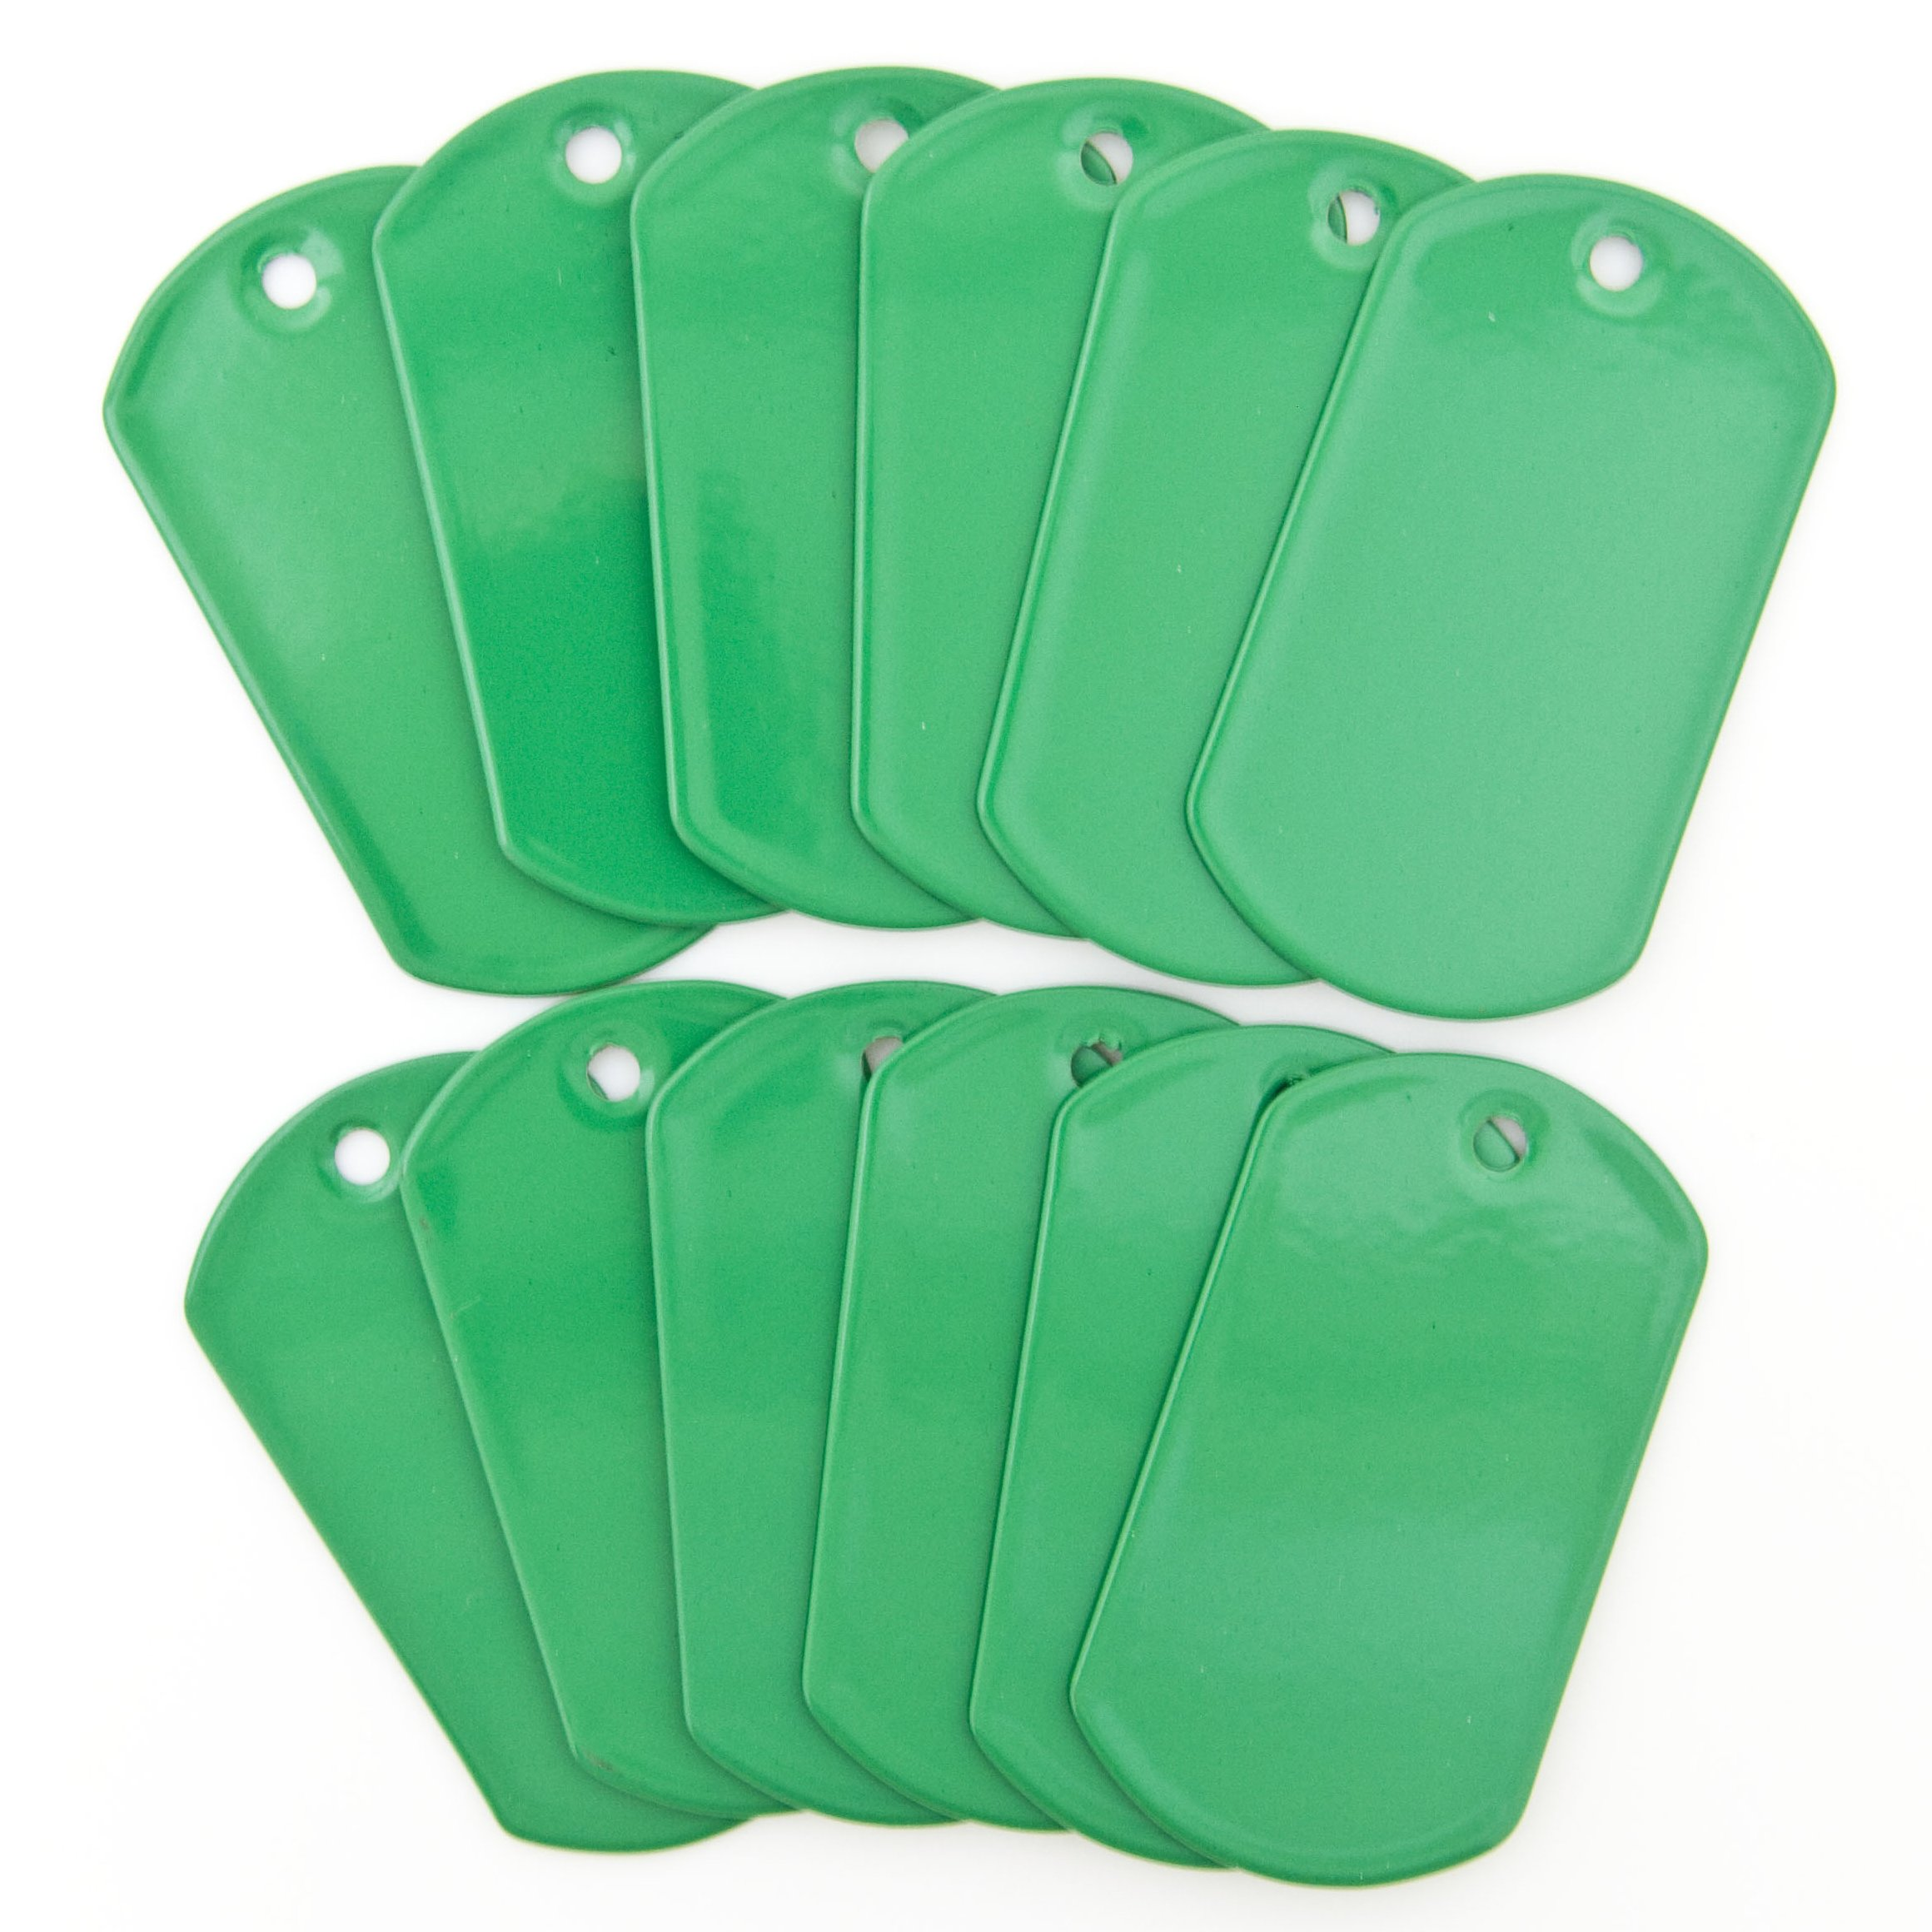 Green Stainless Steel Military Spec Dog Tags by OnDepot - Pack of 100 pcs